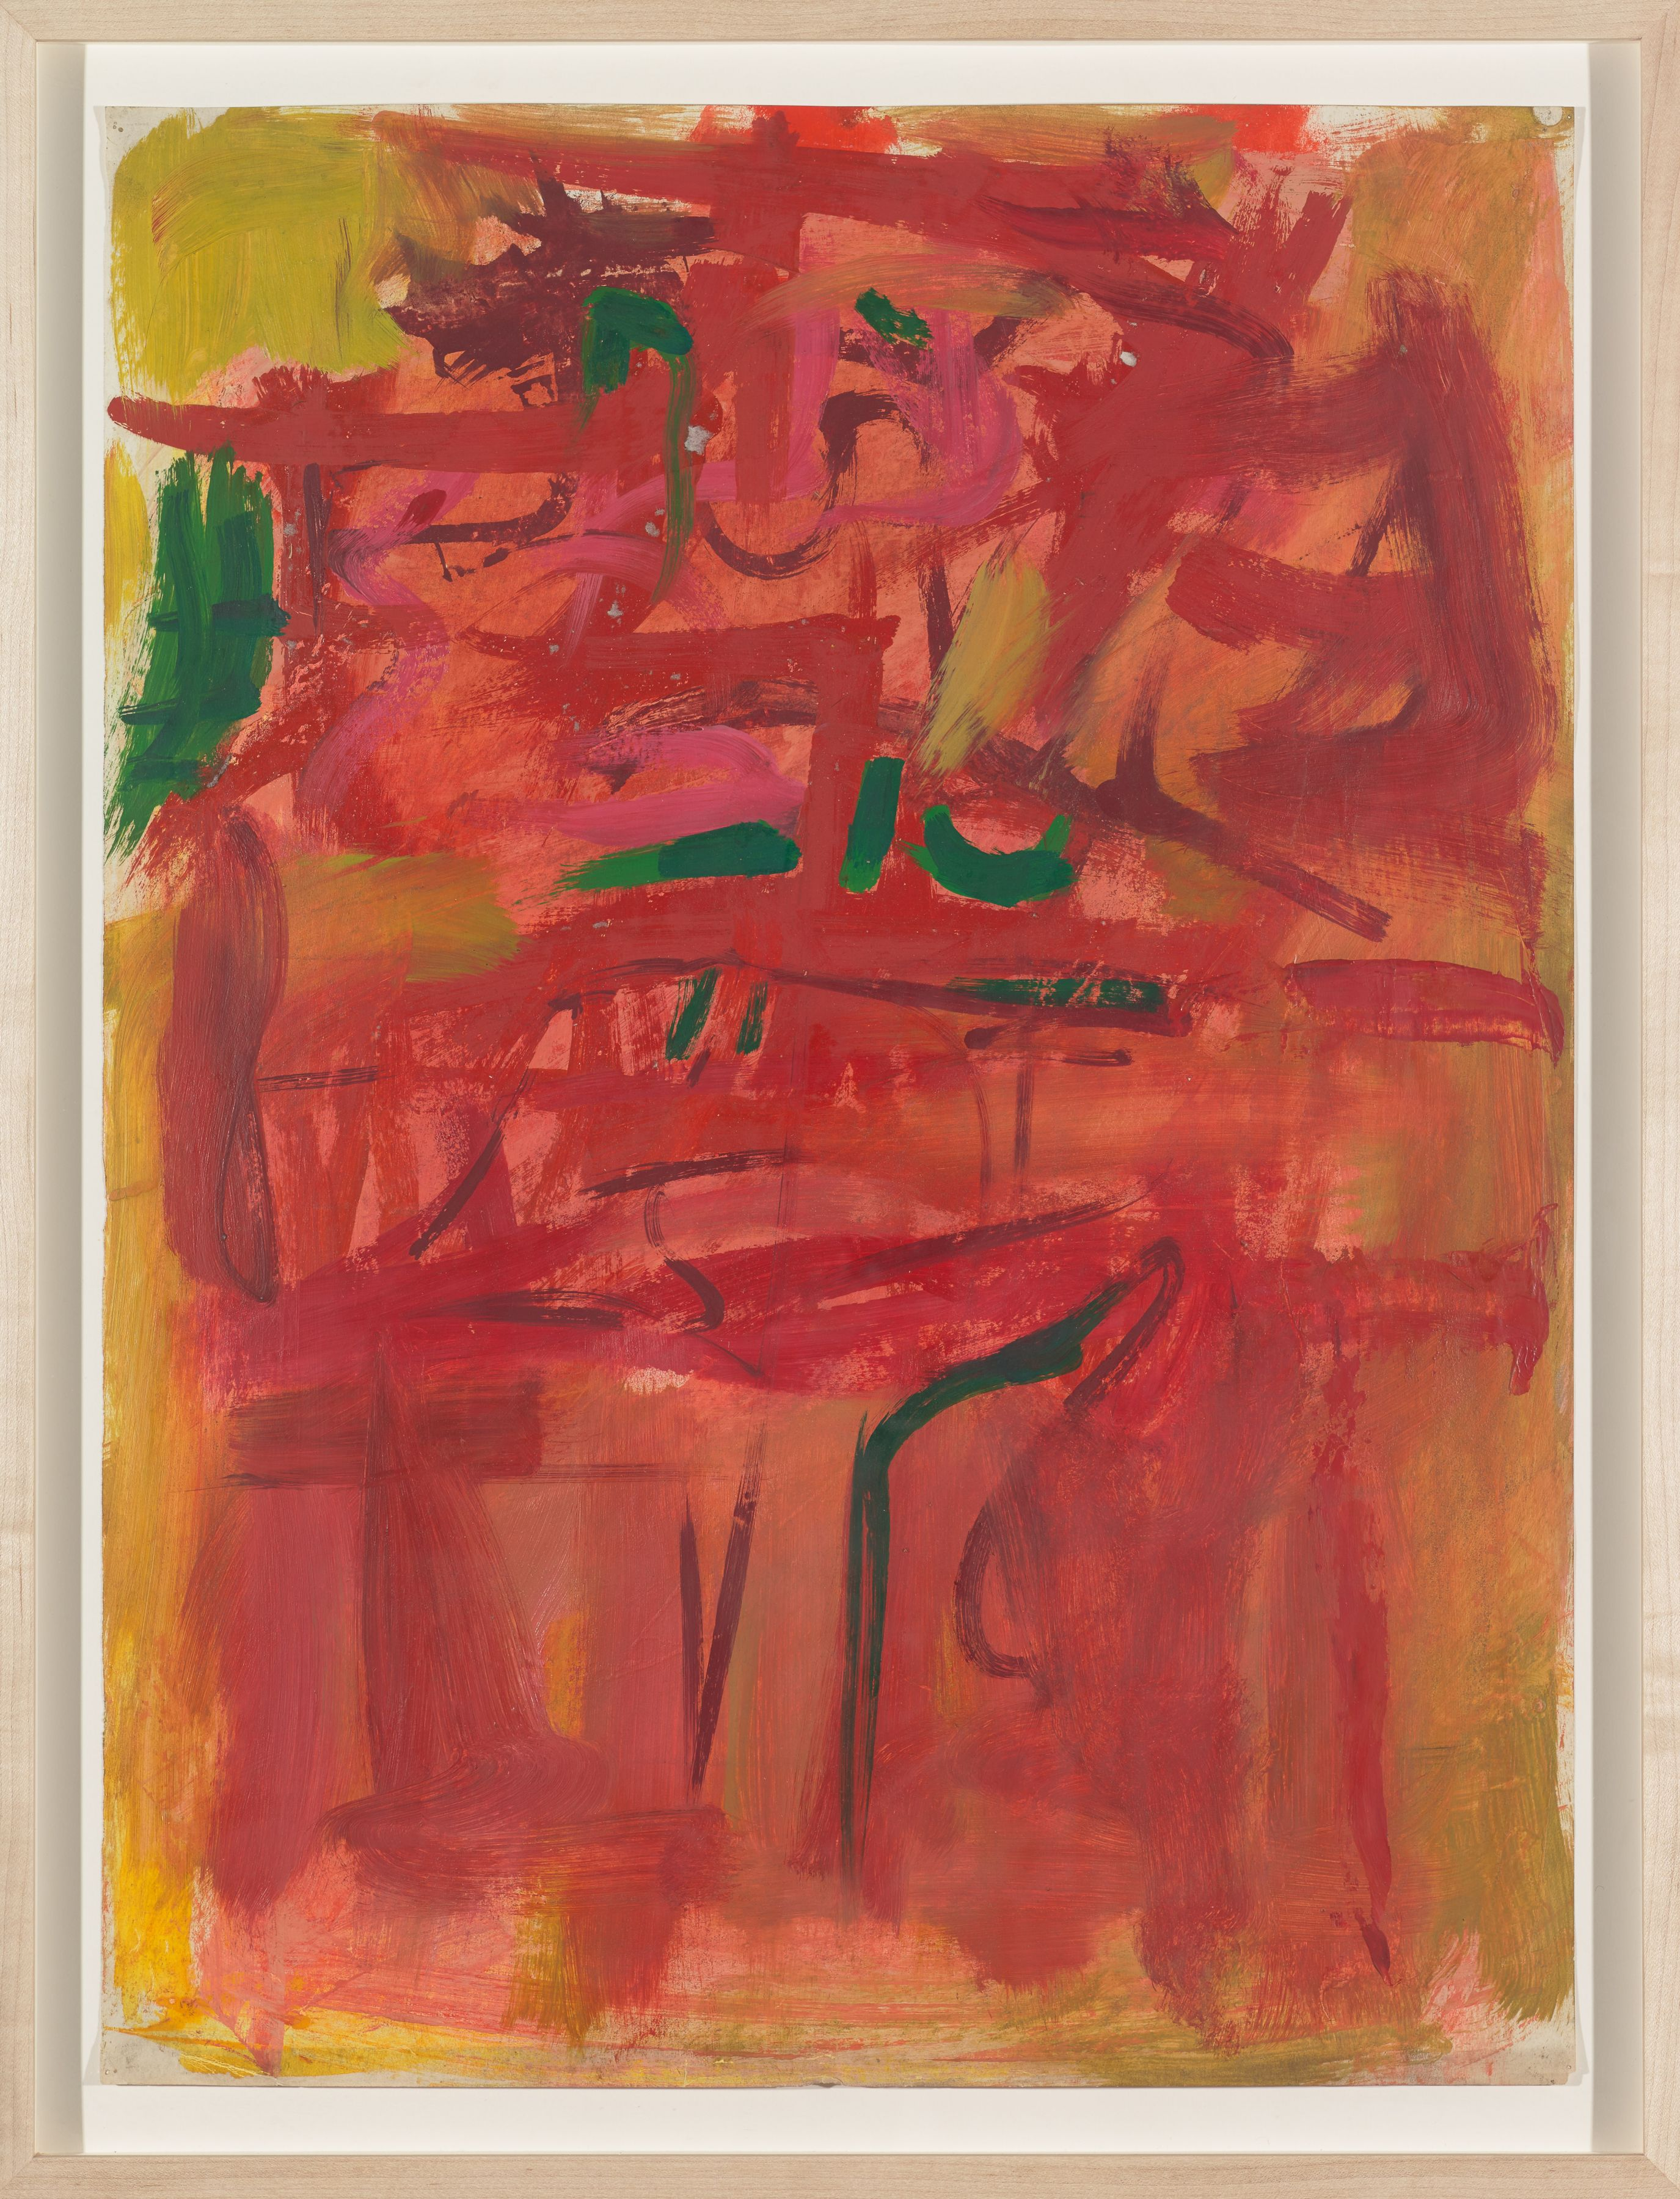 Untitled (House of the Sun), c. 1952, Oil and pencil on paper